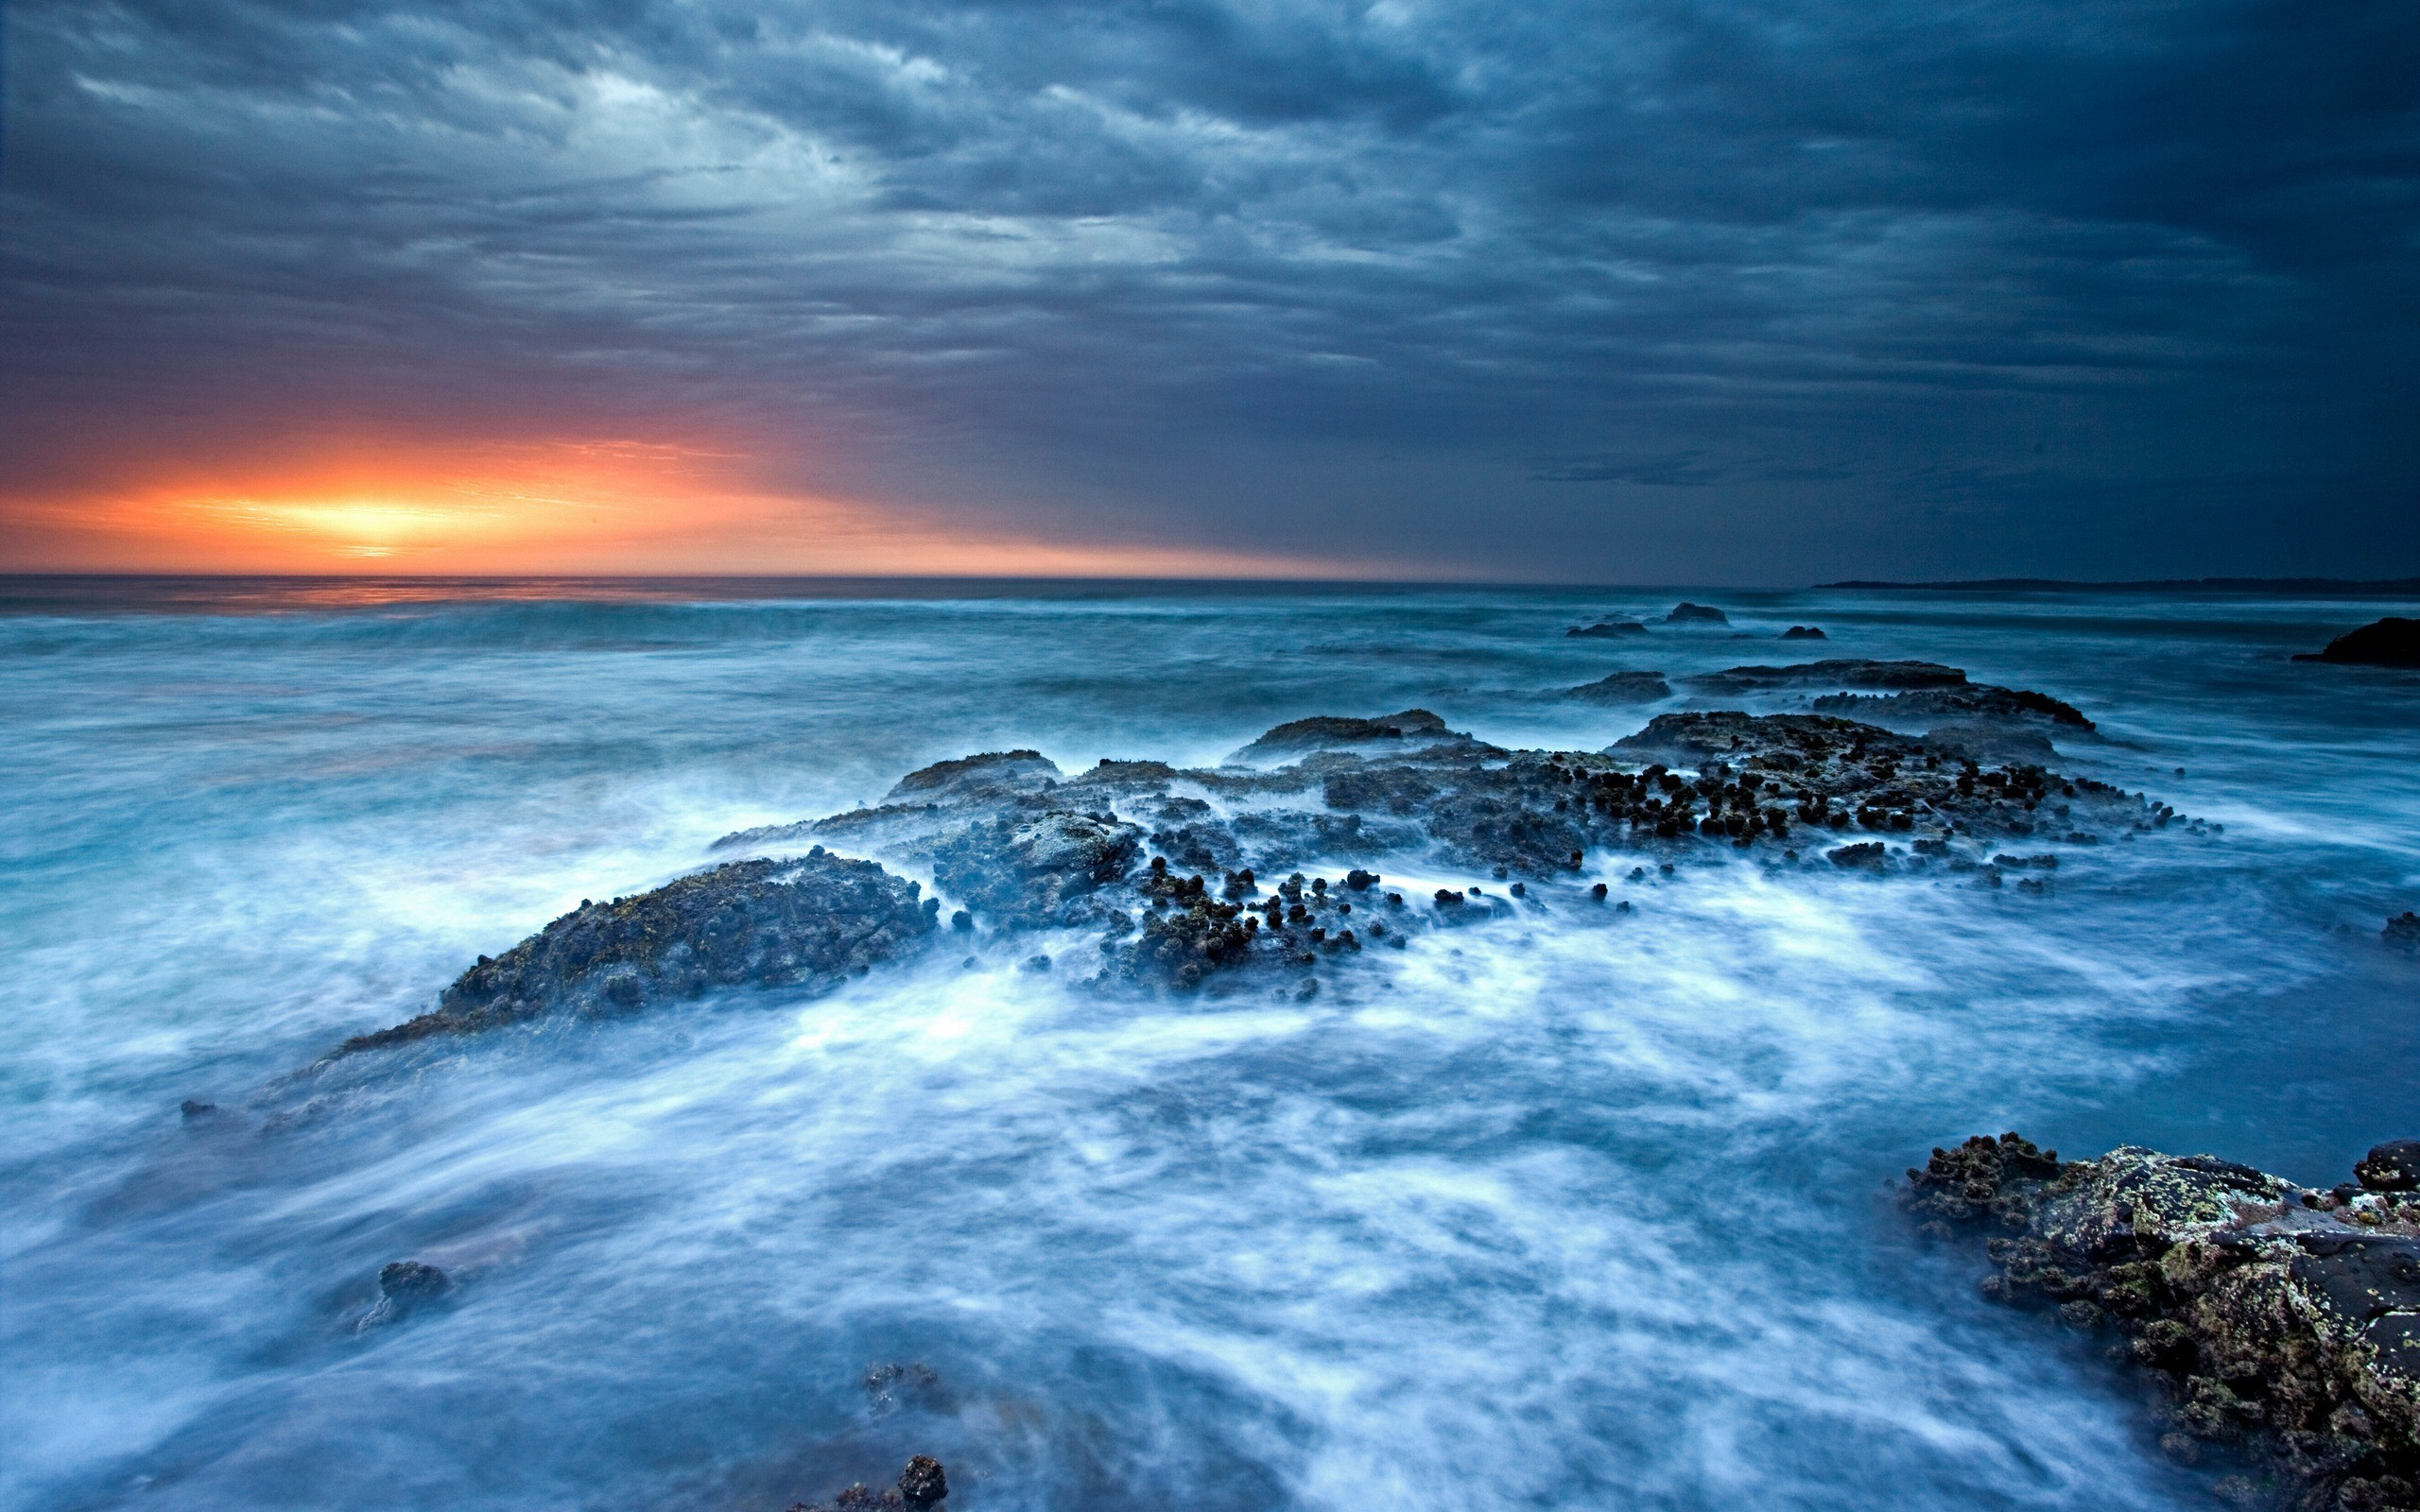 Ocean Waves Sunset Pictures